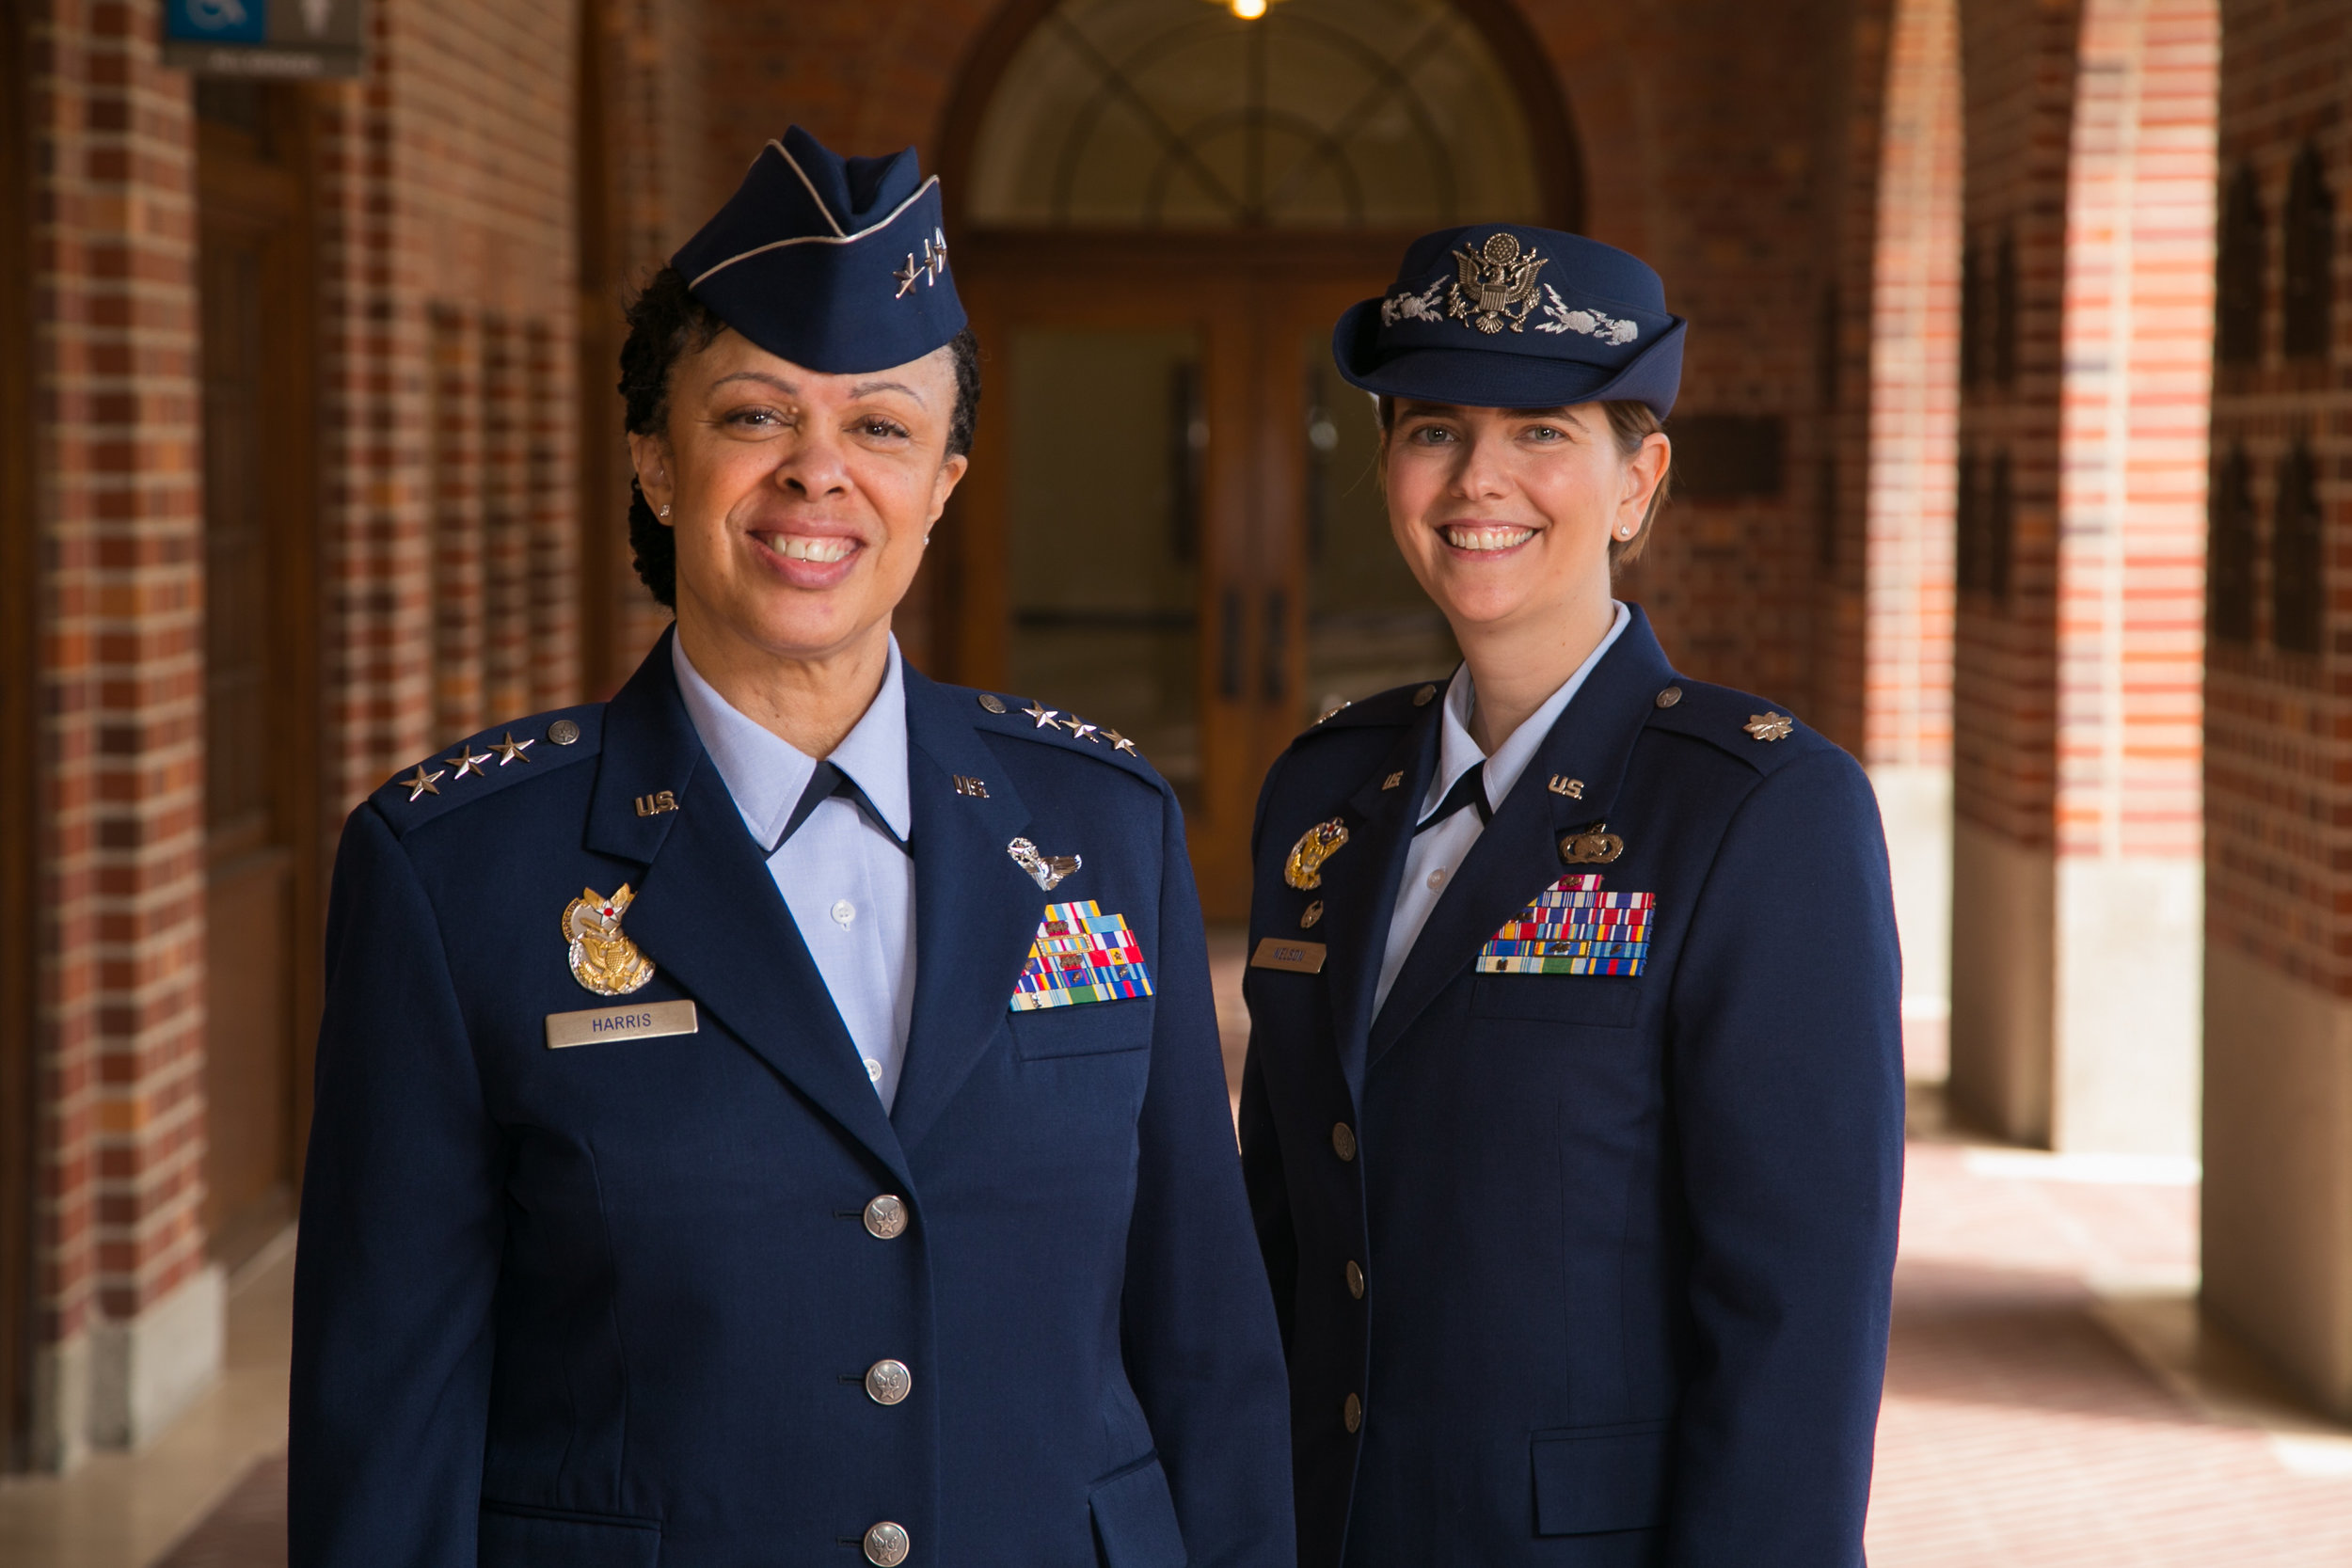 Lt. Gen. Stayce D. Harris (left): A University of Southern California alumna and the current Inspector General of the United States Air Force.  Lt. Col. Olivia D. Nelson (right): Former Department Chair of Aerospace Studies, University of Southern California.